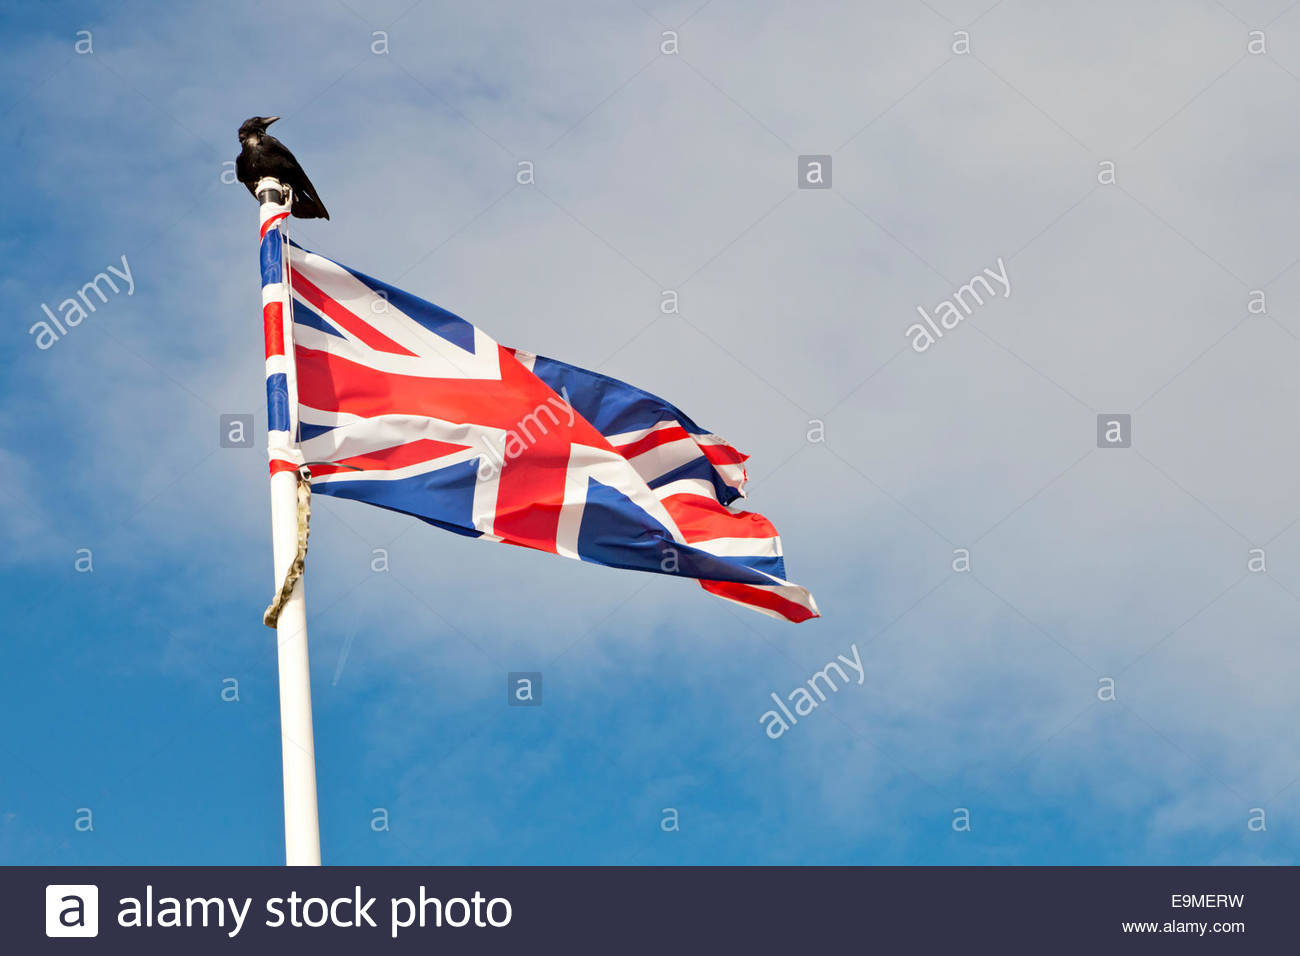 A carrion crow Corvus corone perched on a union jack flagpole, concept dark, threatening, sinister. Brexit metaphor - Stock Image